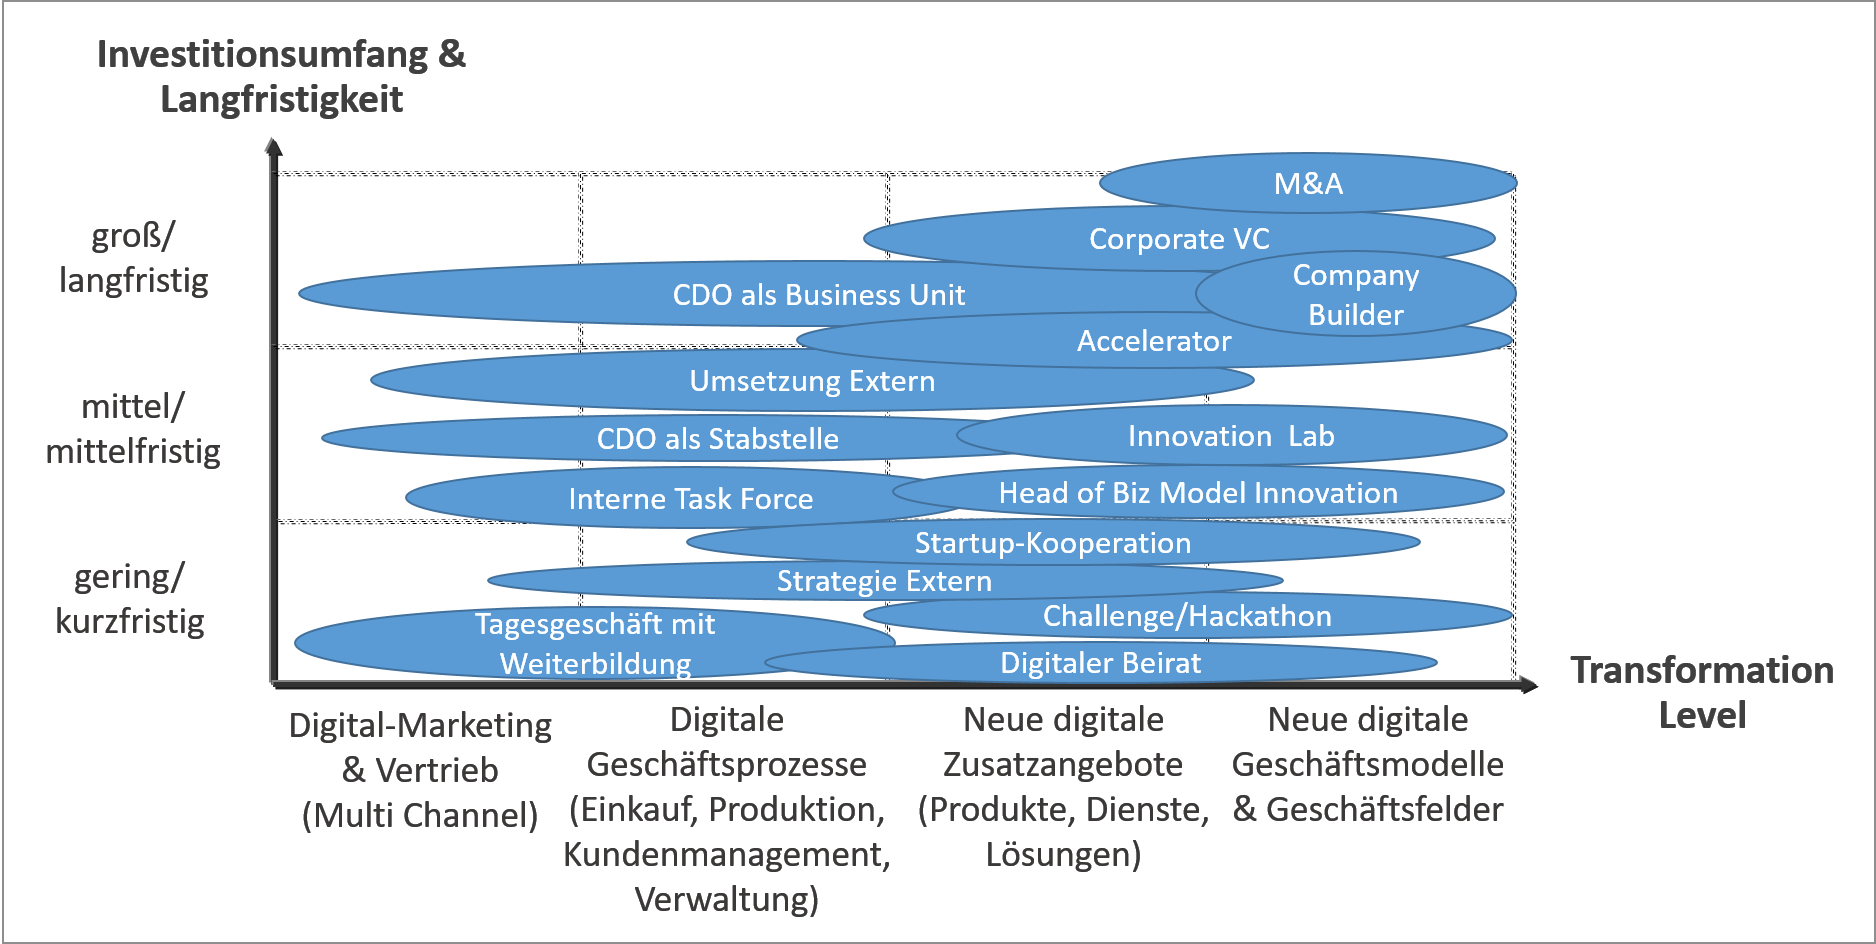 Organisationsformen für die Digitale Transformation (© 1stMOVER 2018)